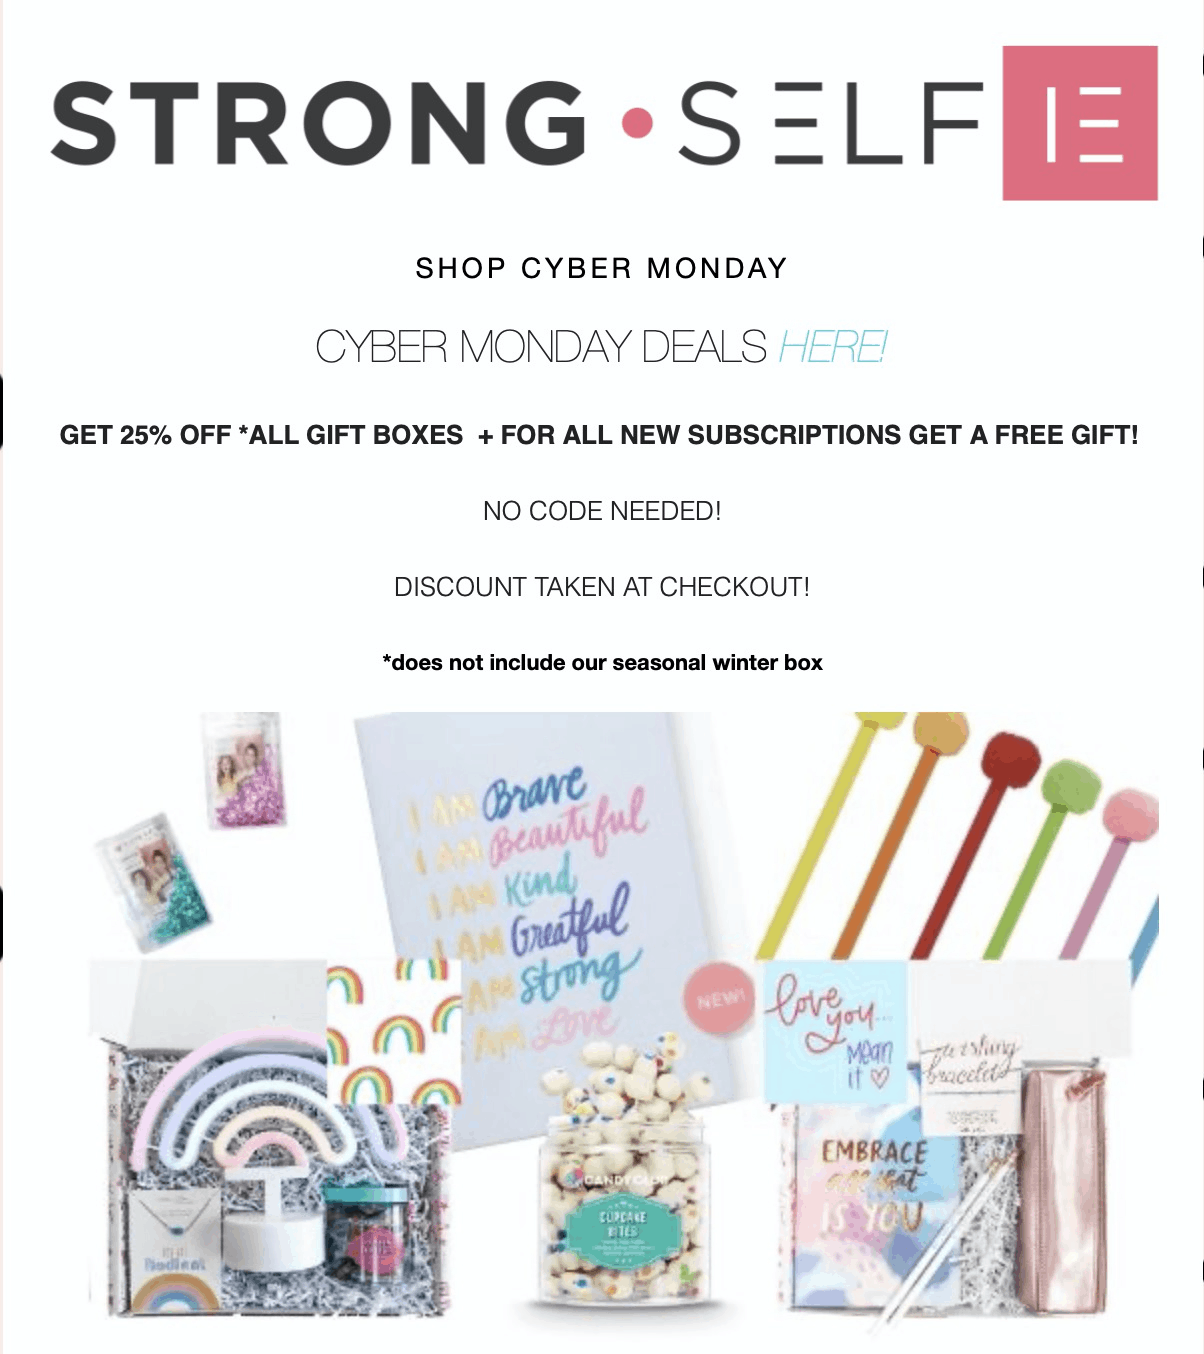 STRONG self(ie) Cyber Monday 2019 Sale: Get 25% Off Gift Boxes!